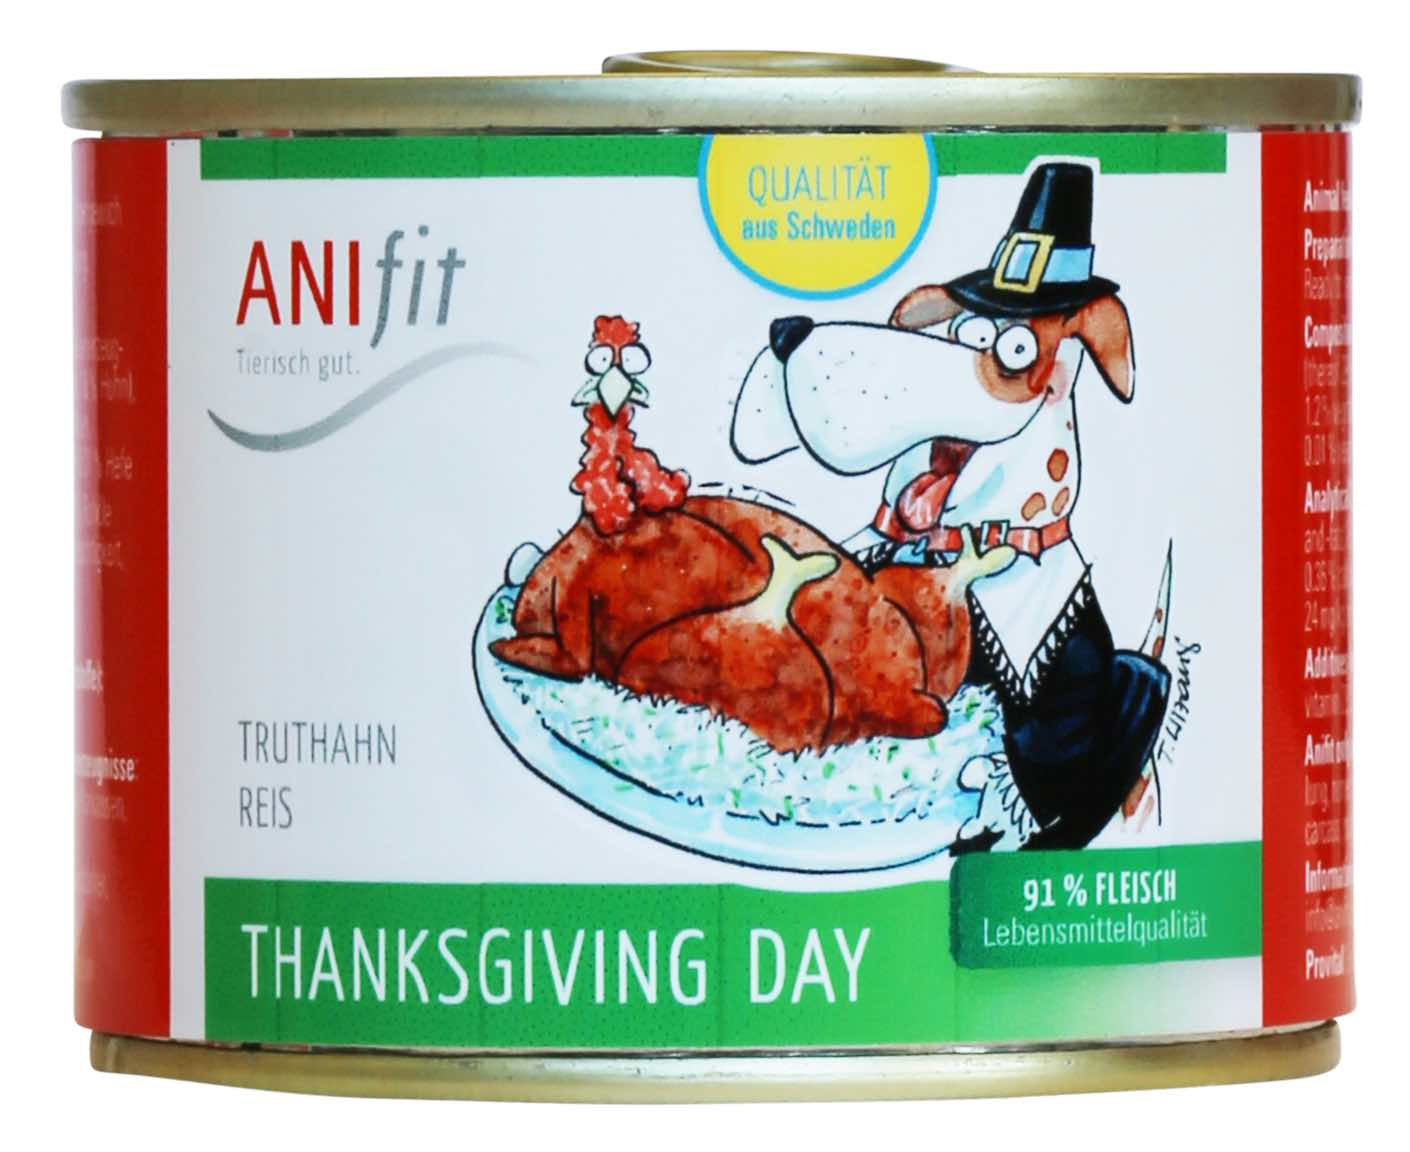 Anifit Hundefutter kaufen Thanksgiving Day